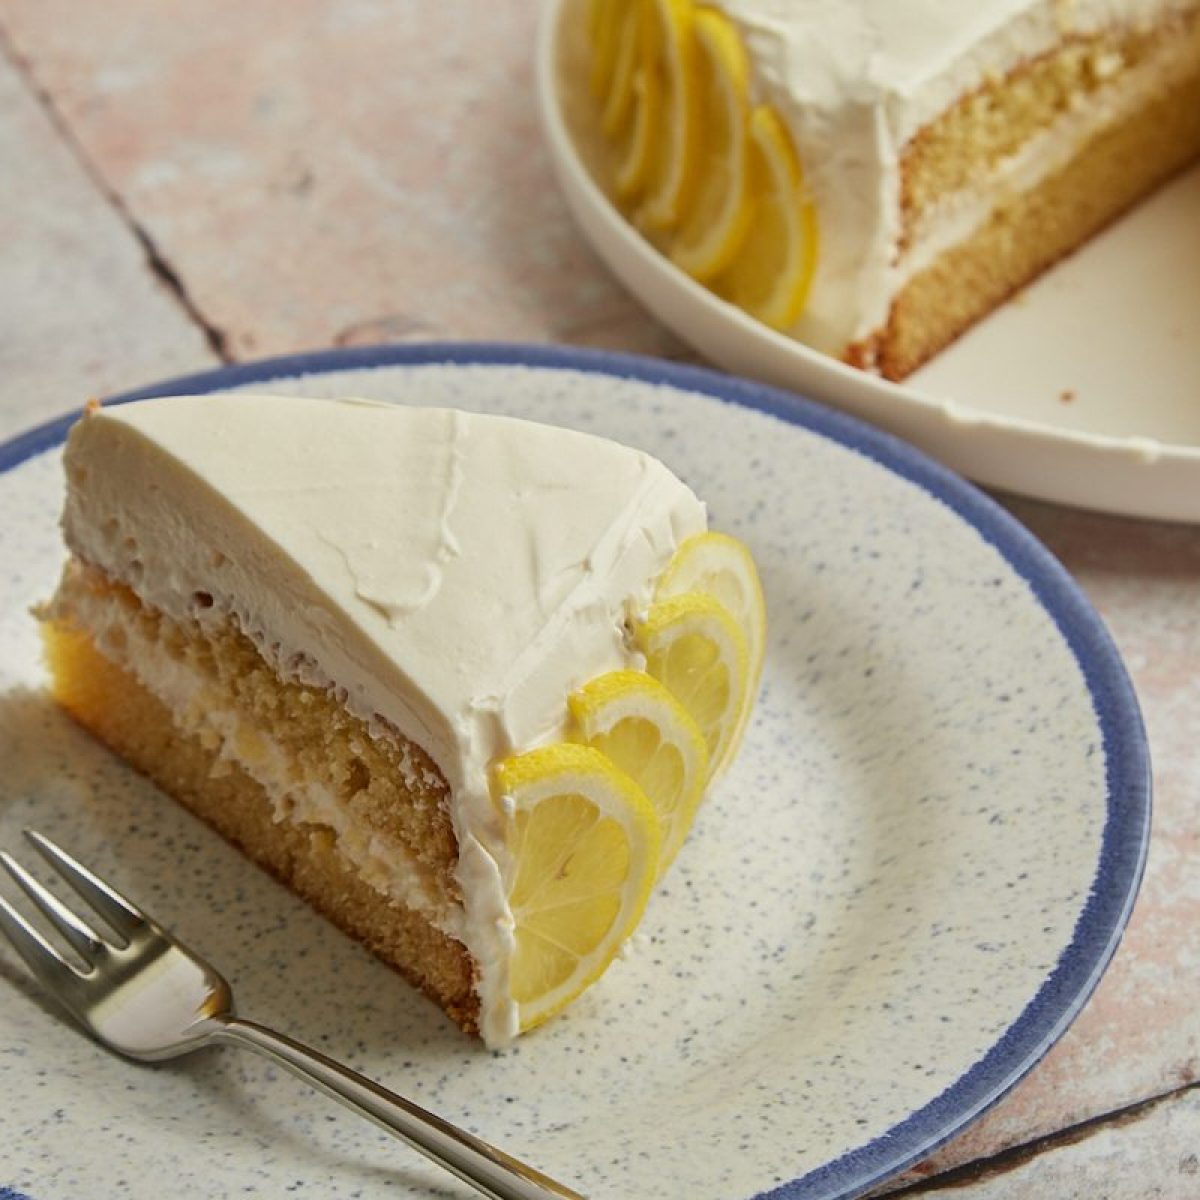 Limoncello Cake The Recipe To Make This Amazing And Tasty Dessert